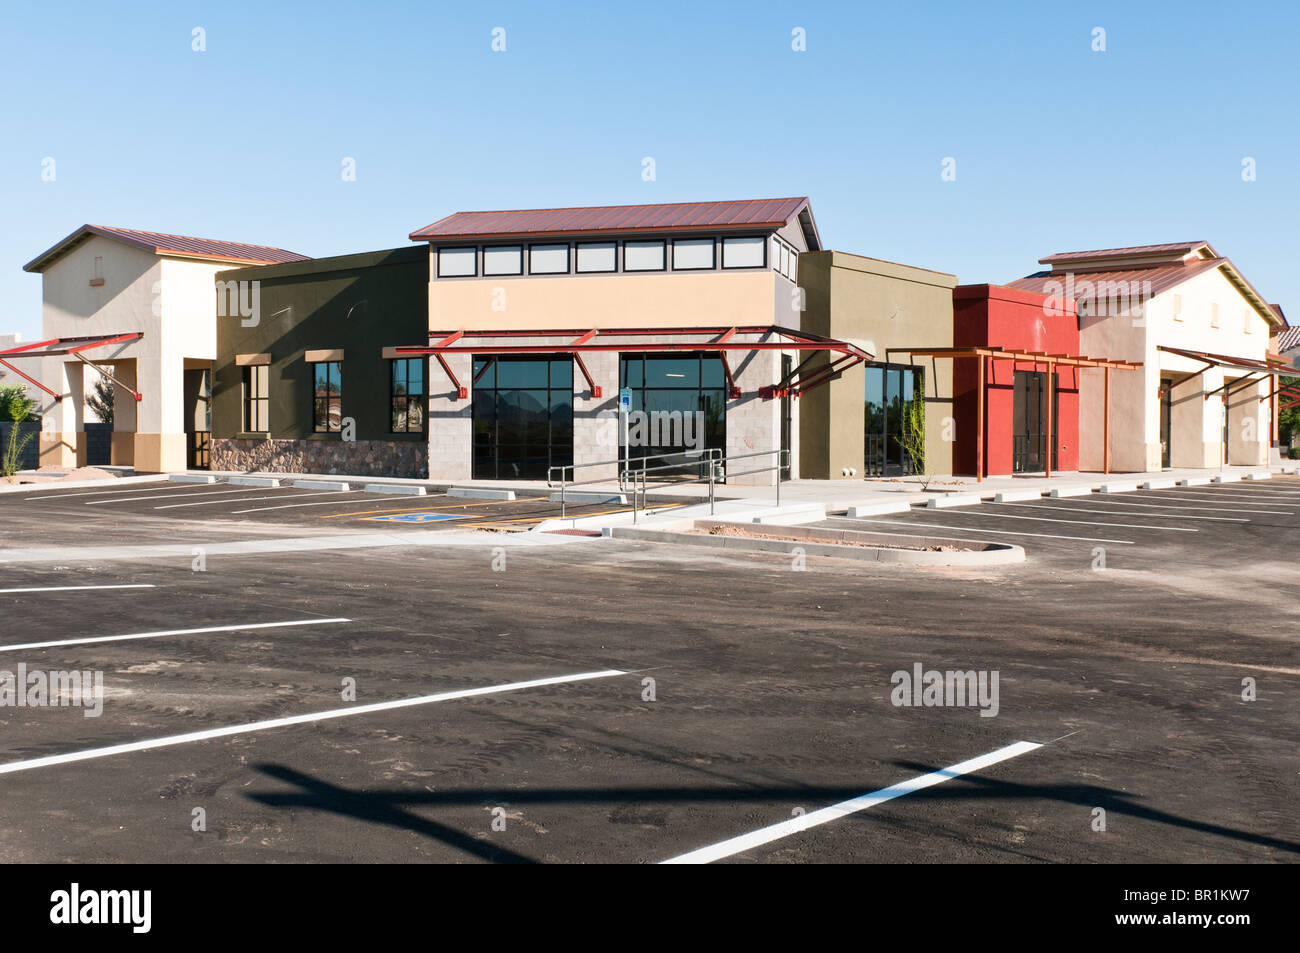 A new retail strip mall is nearing completion in Arizona. - Stock Image